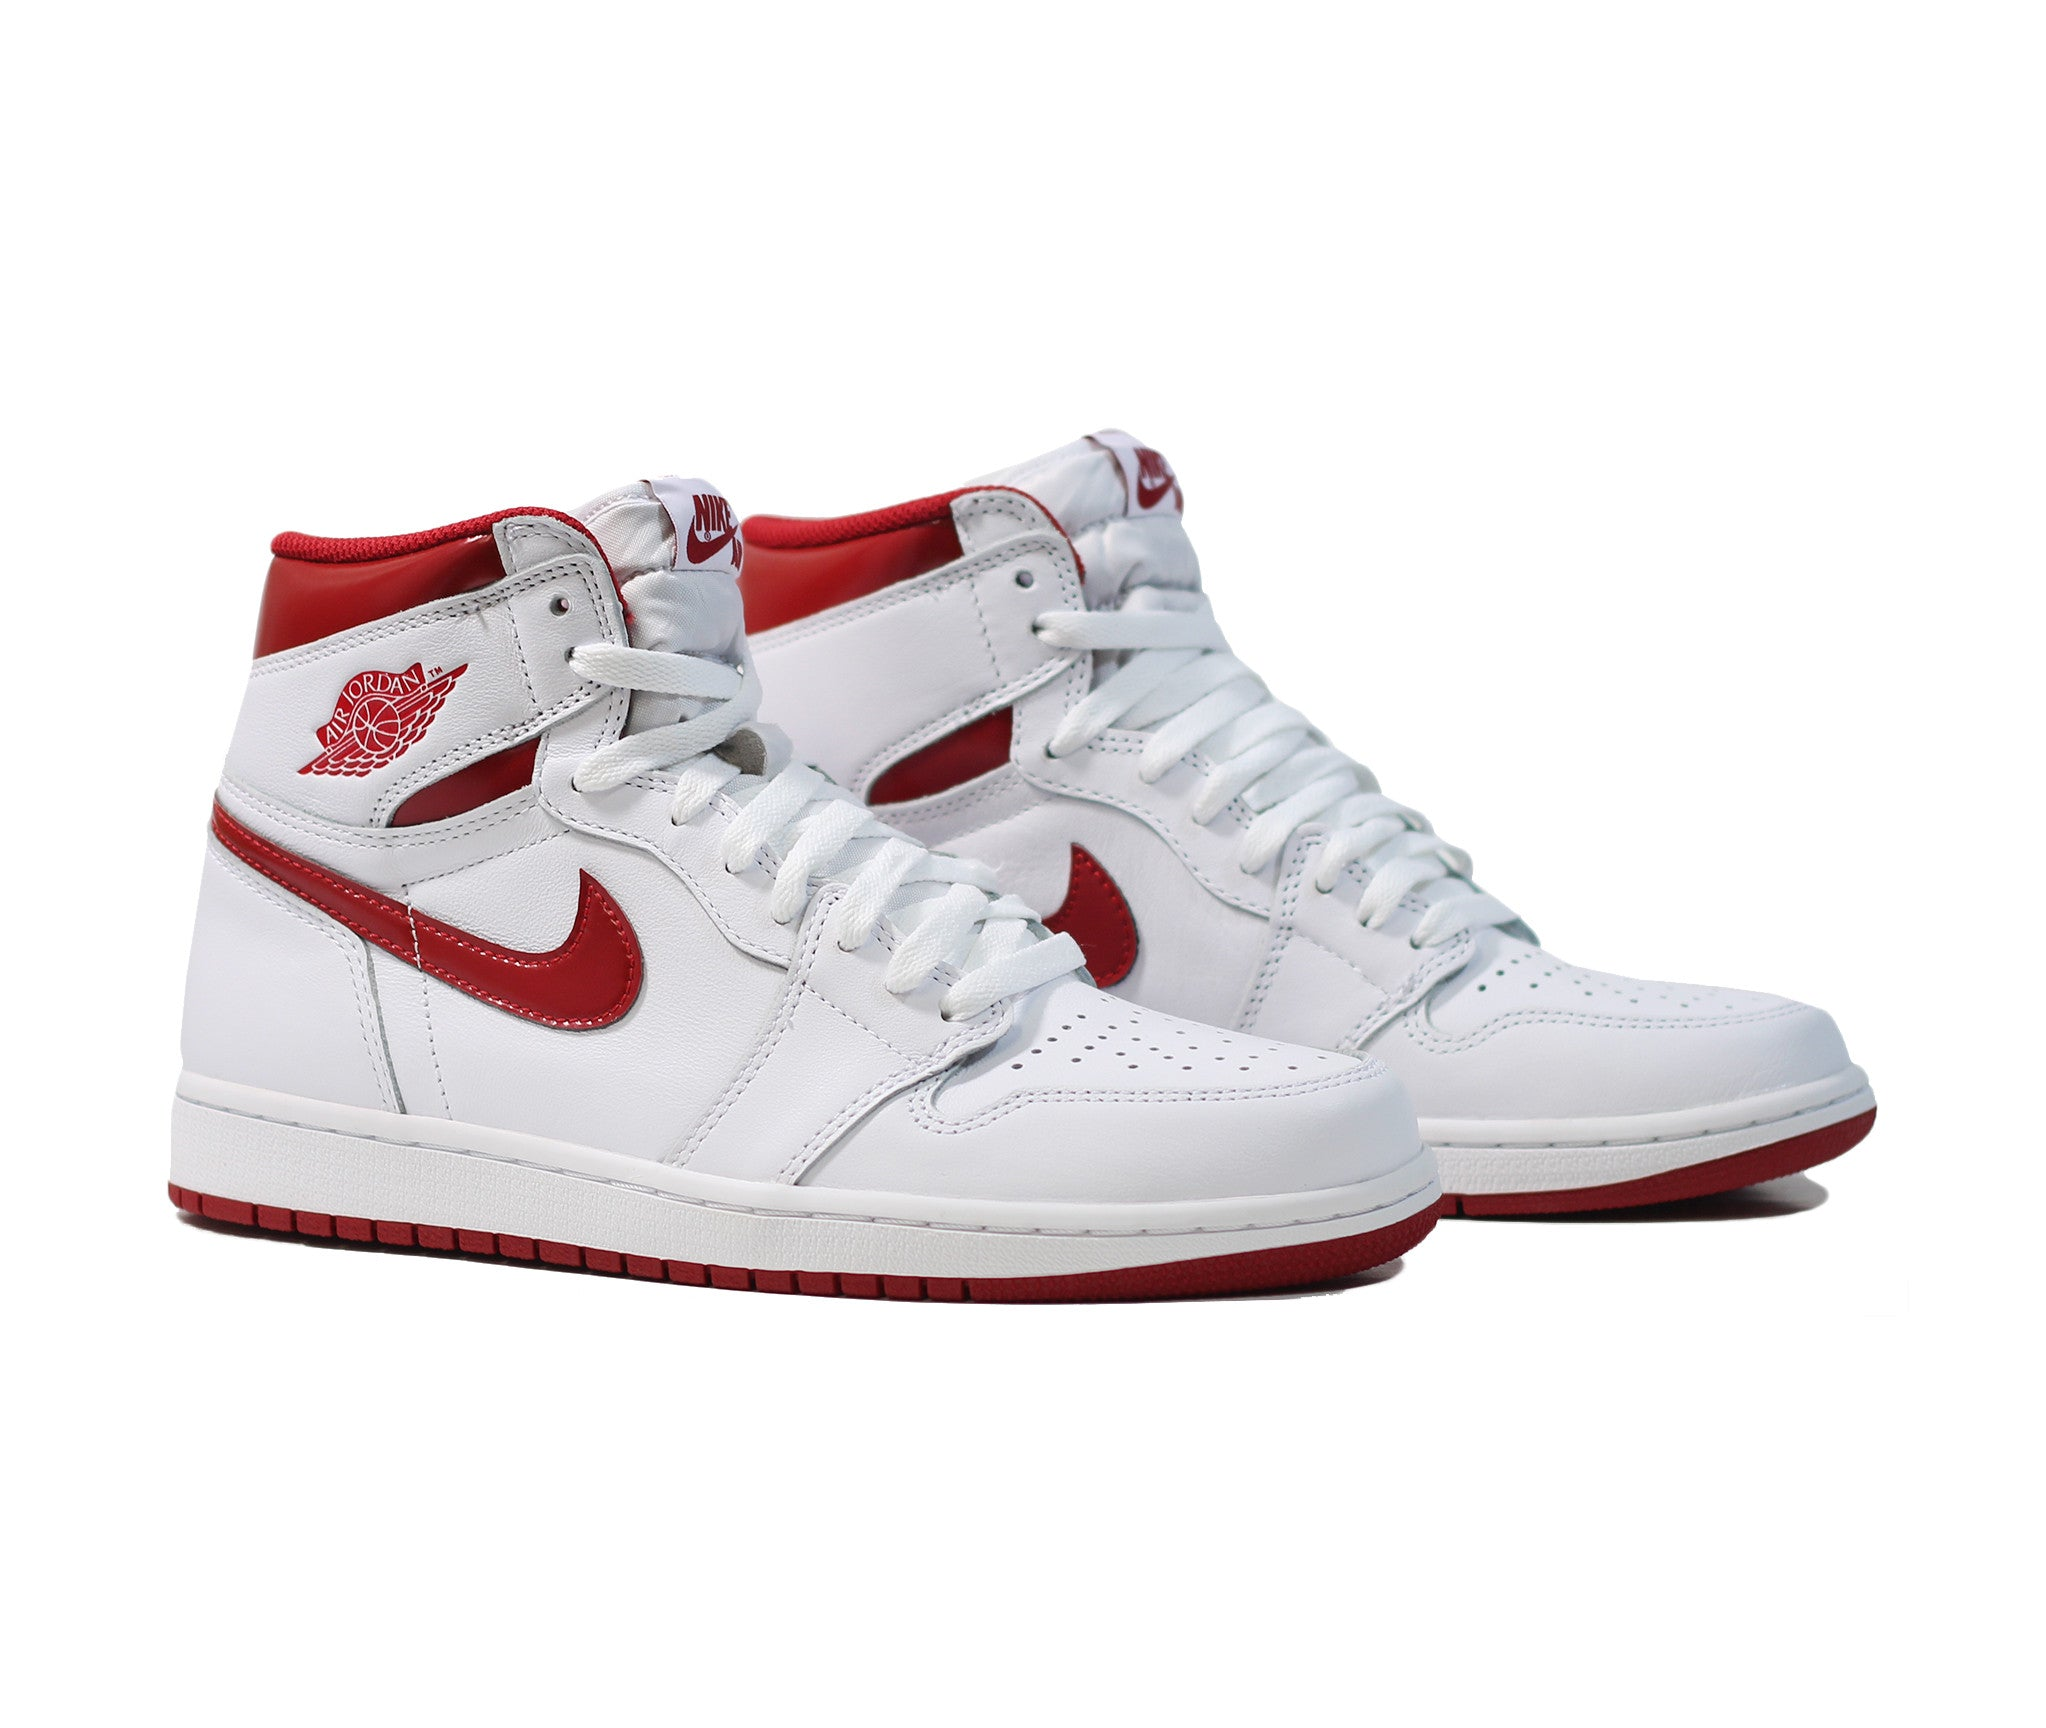 reputable site a2420 84736 Air Jordan 1 Retro High OG 'Metallic Red' - Varsity Red/White